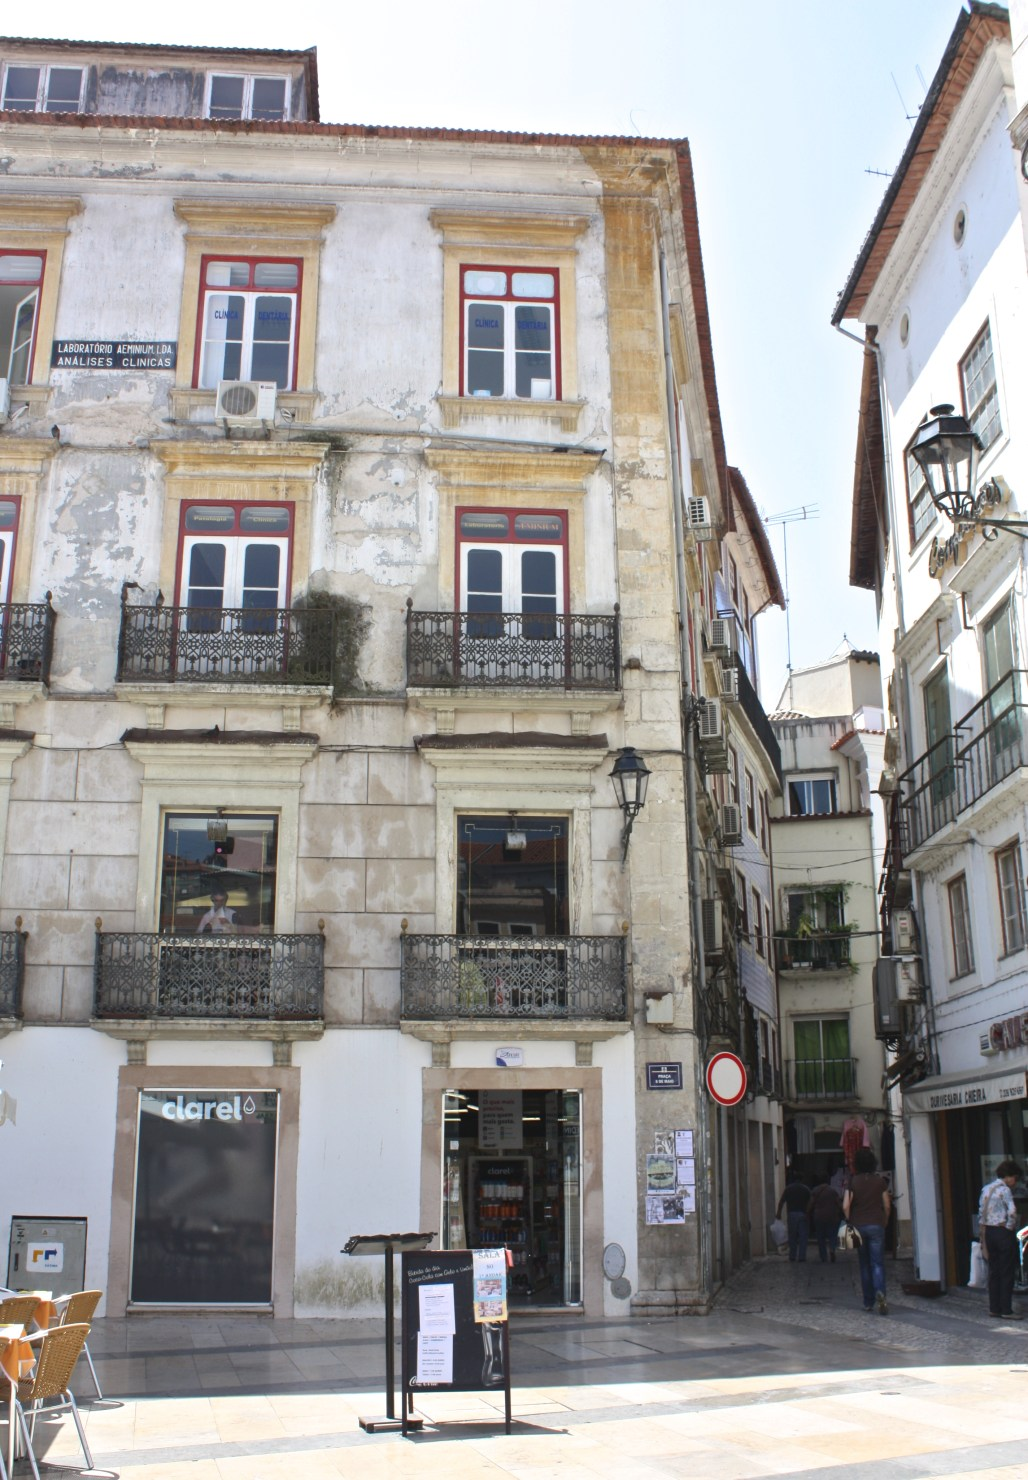 Traveling to...the academic history + intrigue of Coimbra